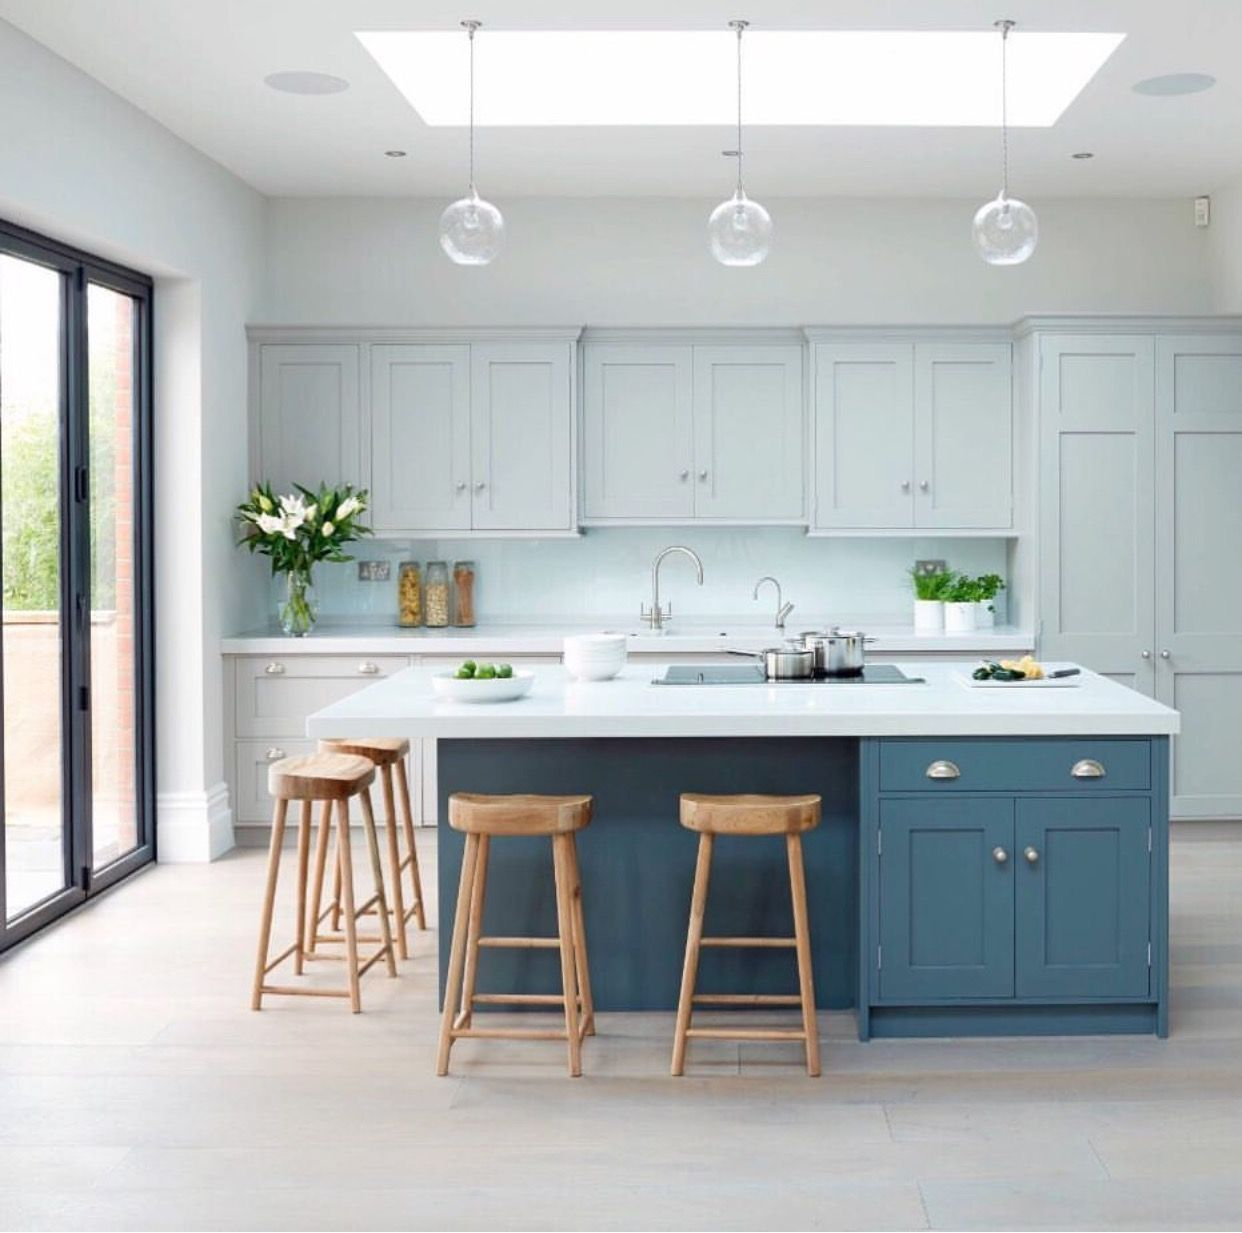 Pin by Craven Hill Capital on Kitchens | Pinterest | Kitchens